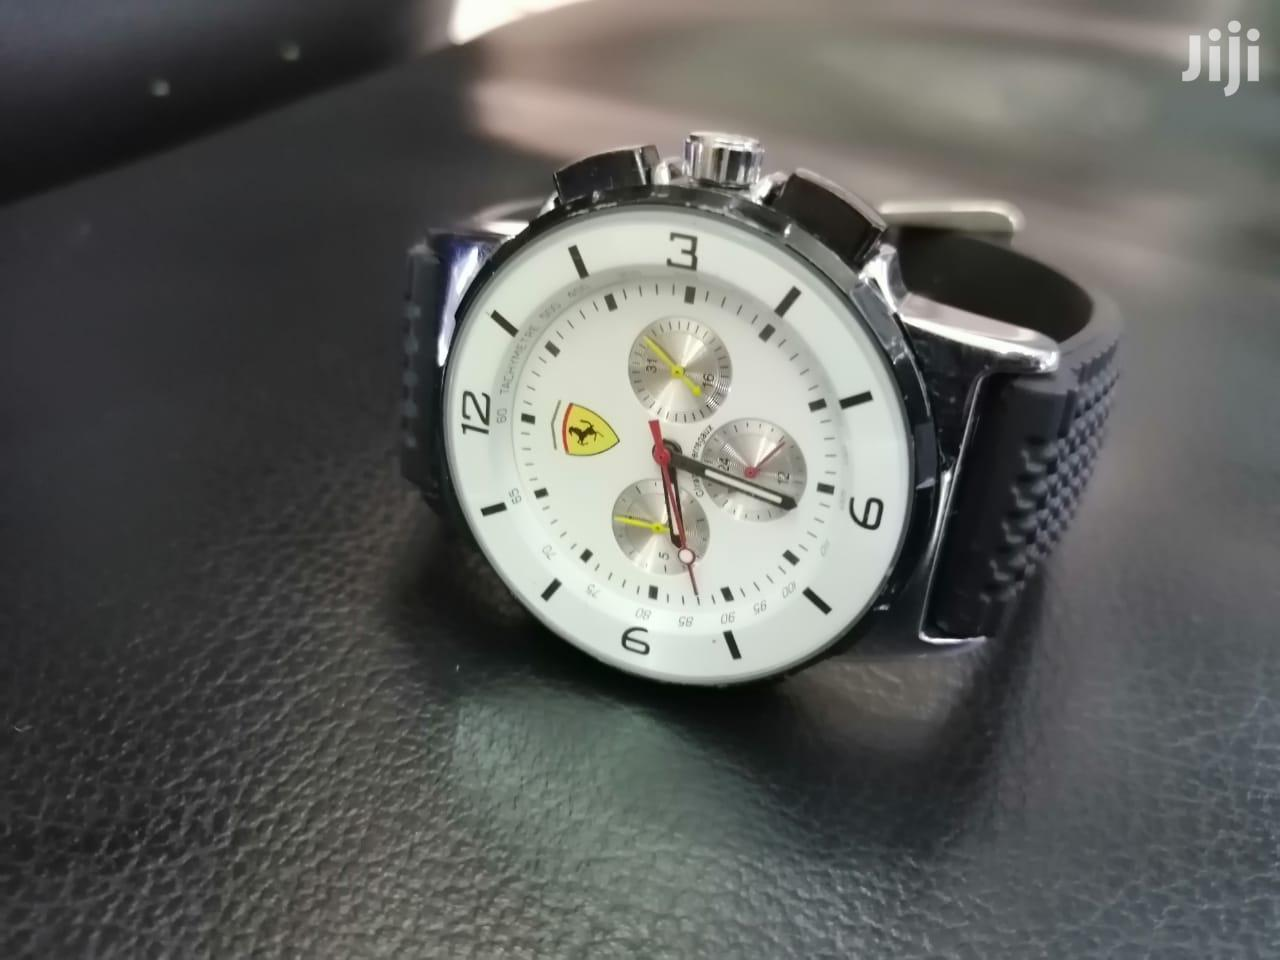 Automatic Ferrari Unique Quality Timepiece | Watches for sale in Nairobi Central, Nairobi, Kenya